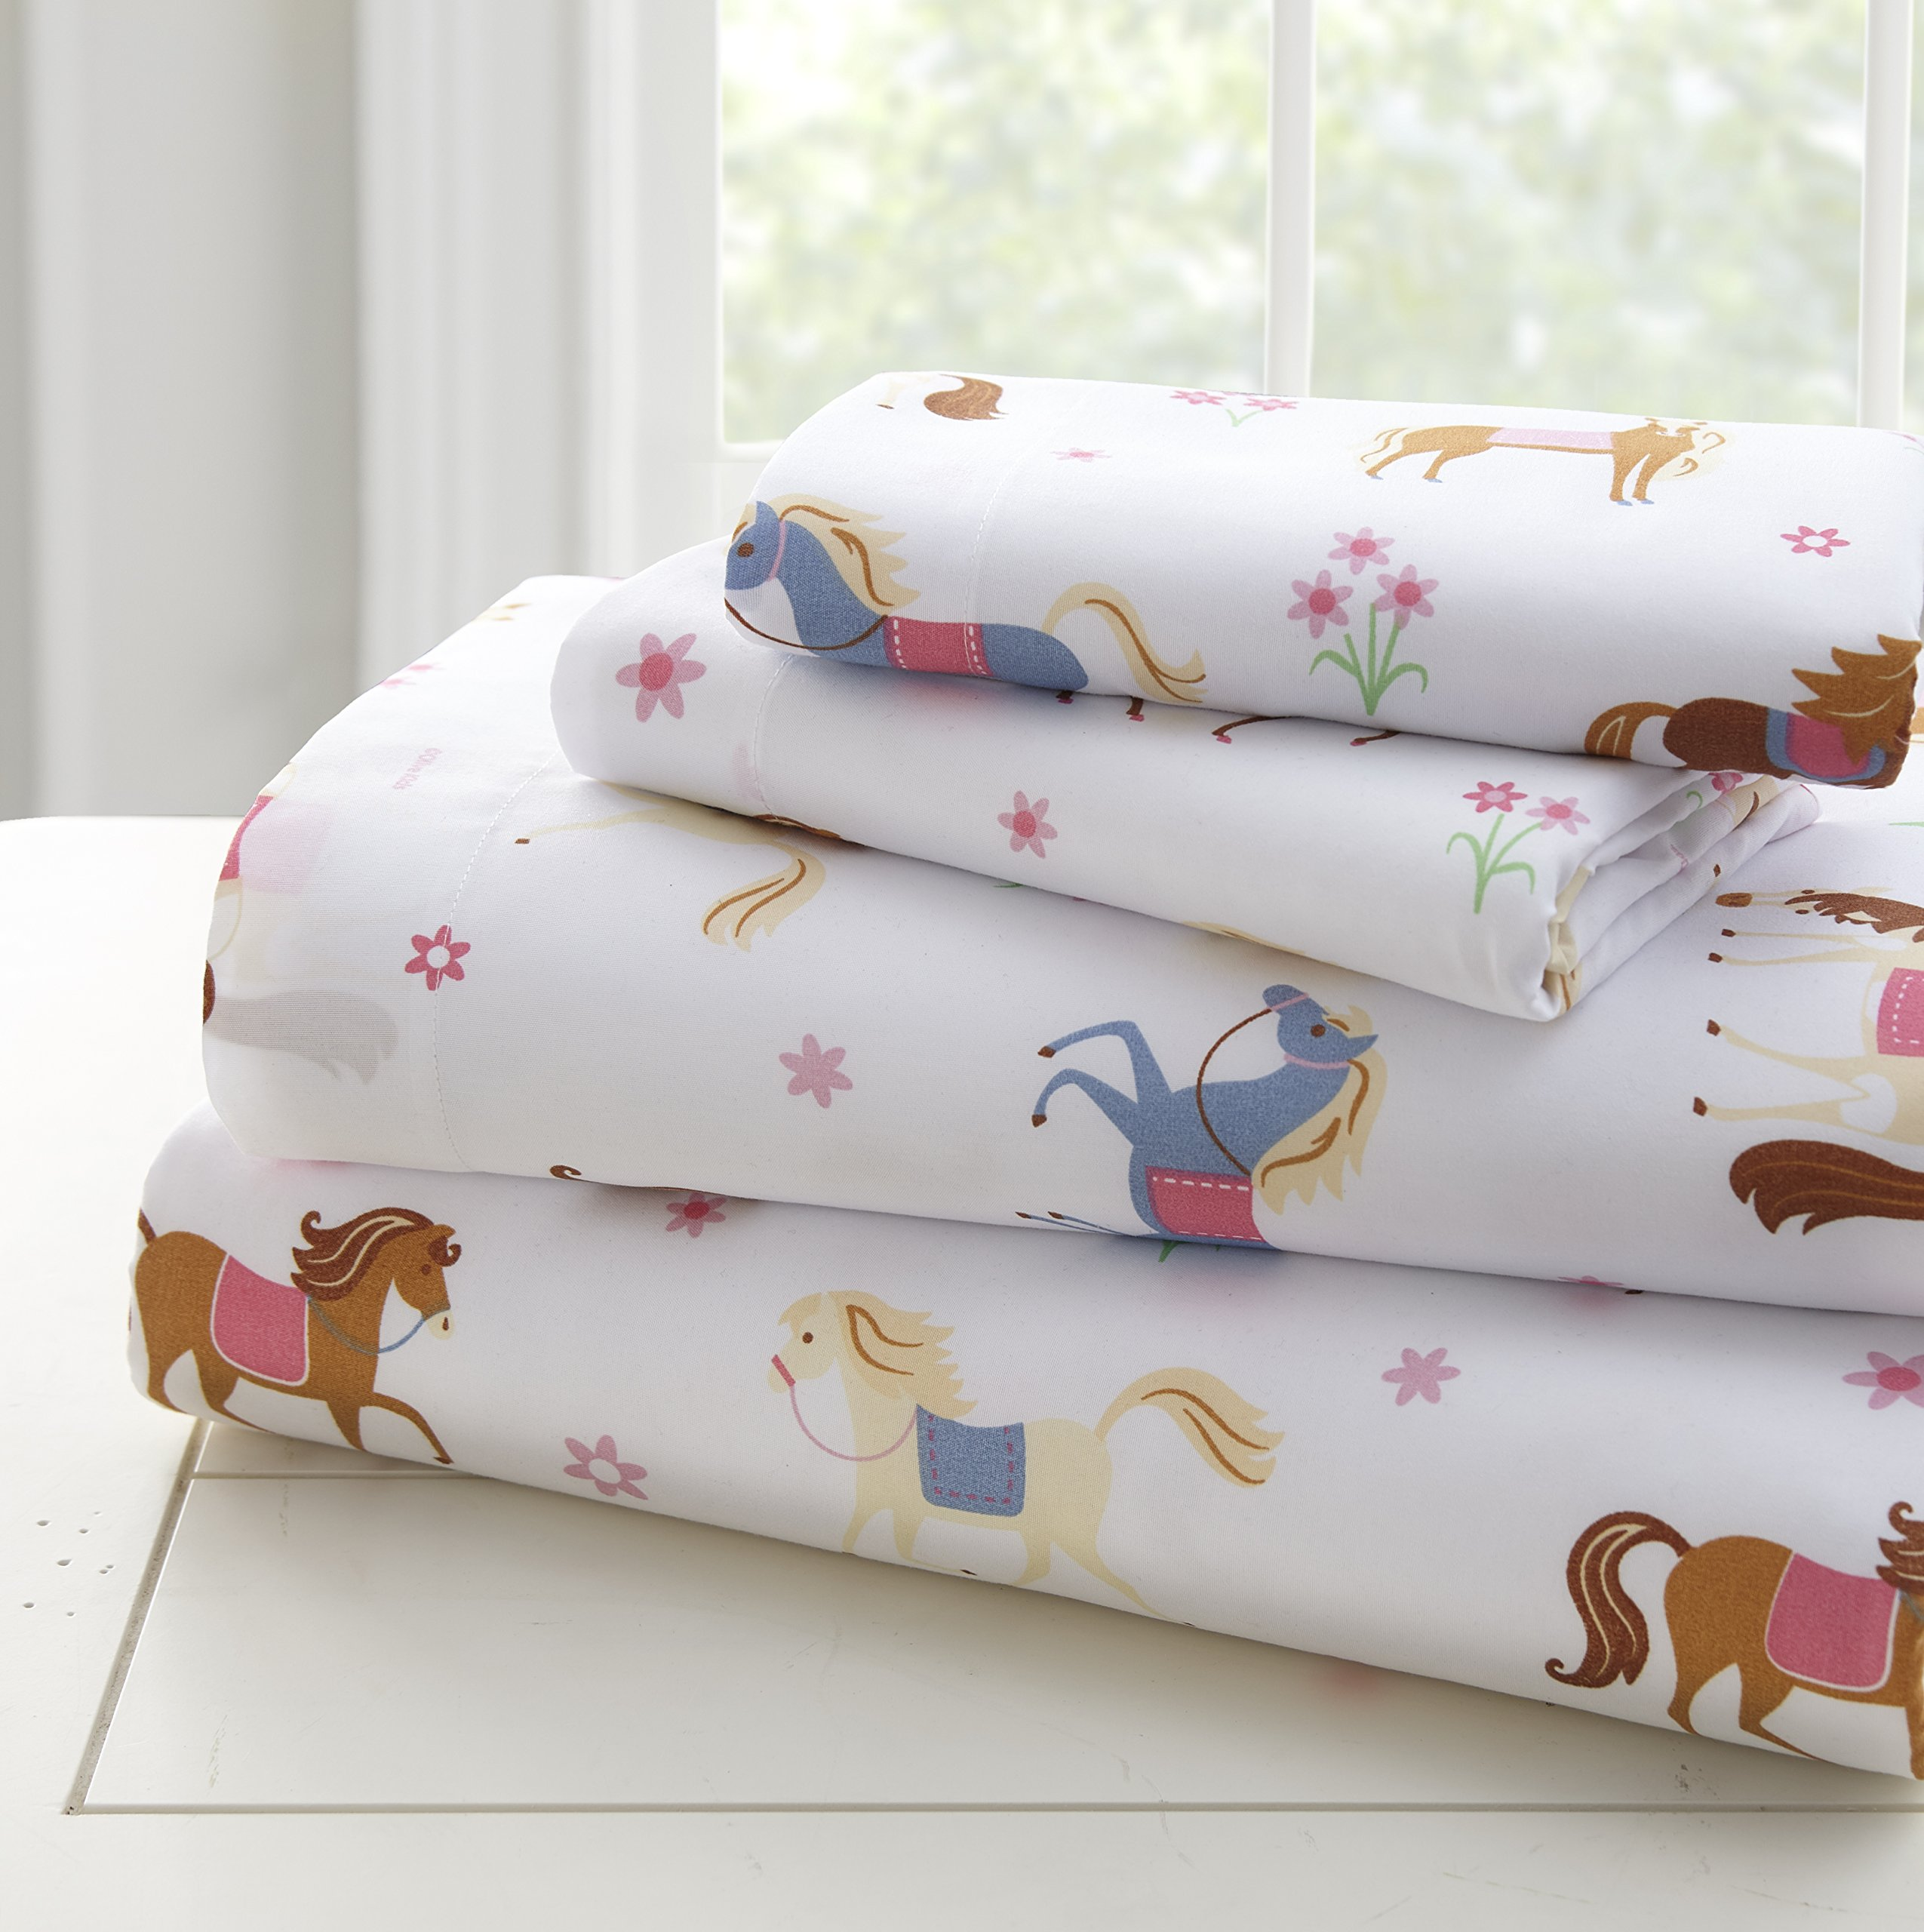 Wildkin Microfiber Twin Sheet Set, Includes Top Sheet, Fitted Sheet, and Pillow Case Olive Kids Design - Horses, Multicolor, One Size